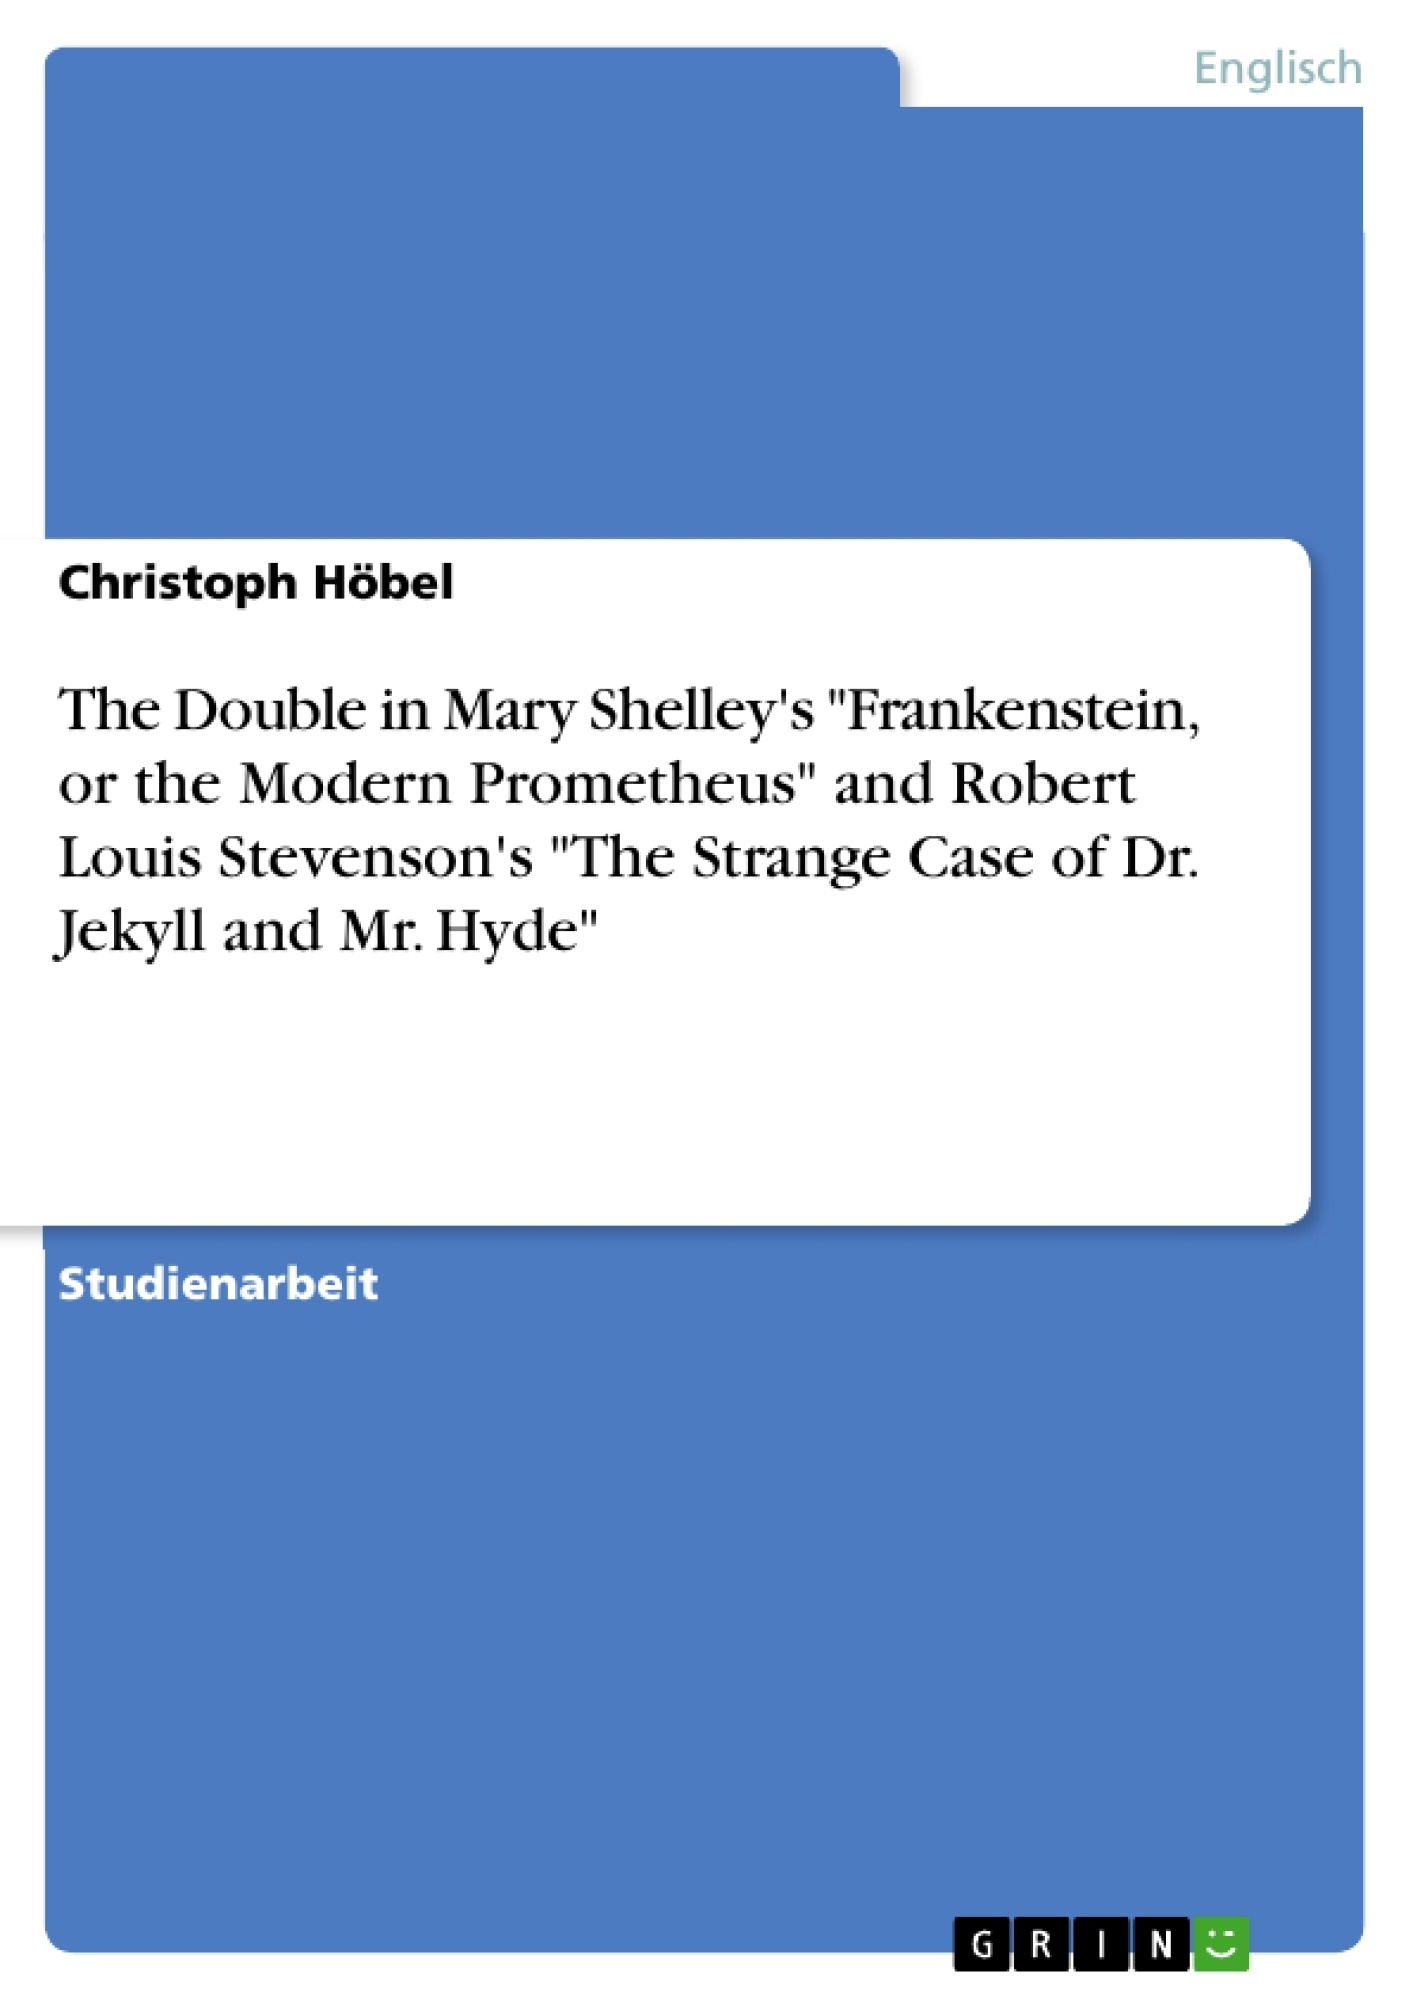 """Titel: The Double in Mary Shelley's """"Frankenstein, or the Modern Prometheus"""" and Robert Louis Stevenson's """"The Strange Case of Dr. Jekyll and Mr. Hyde"""""""